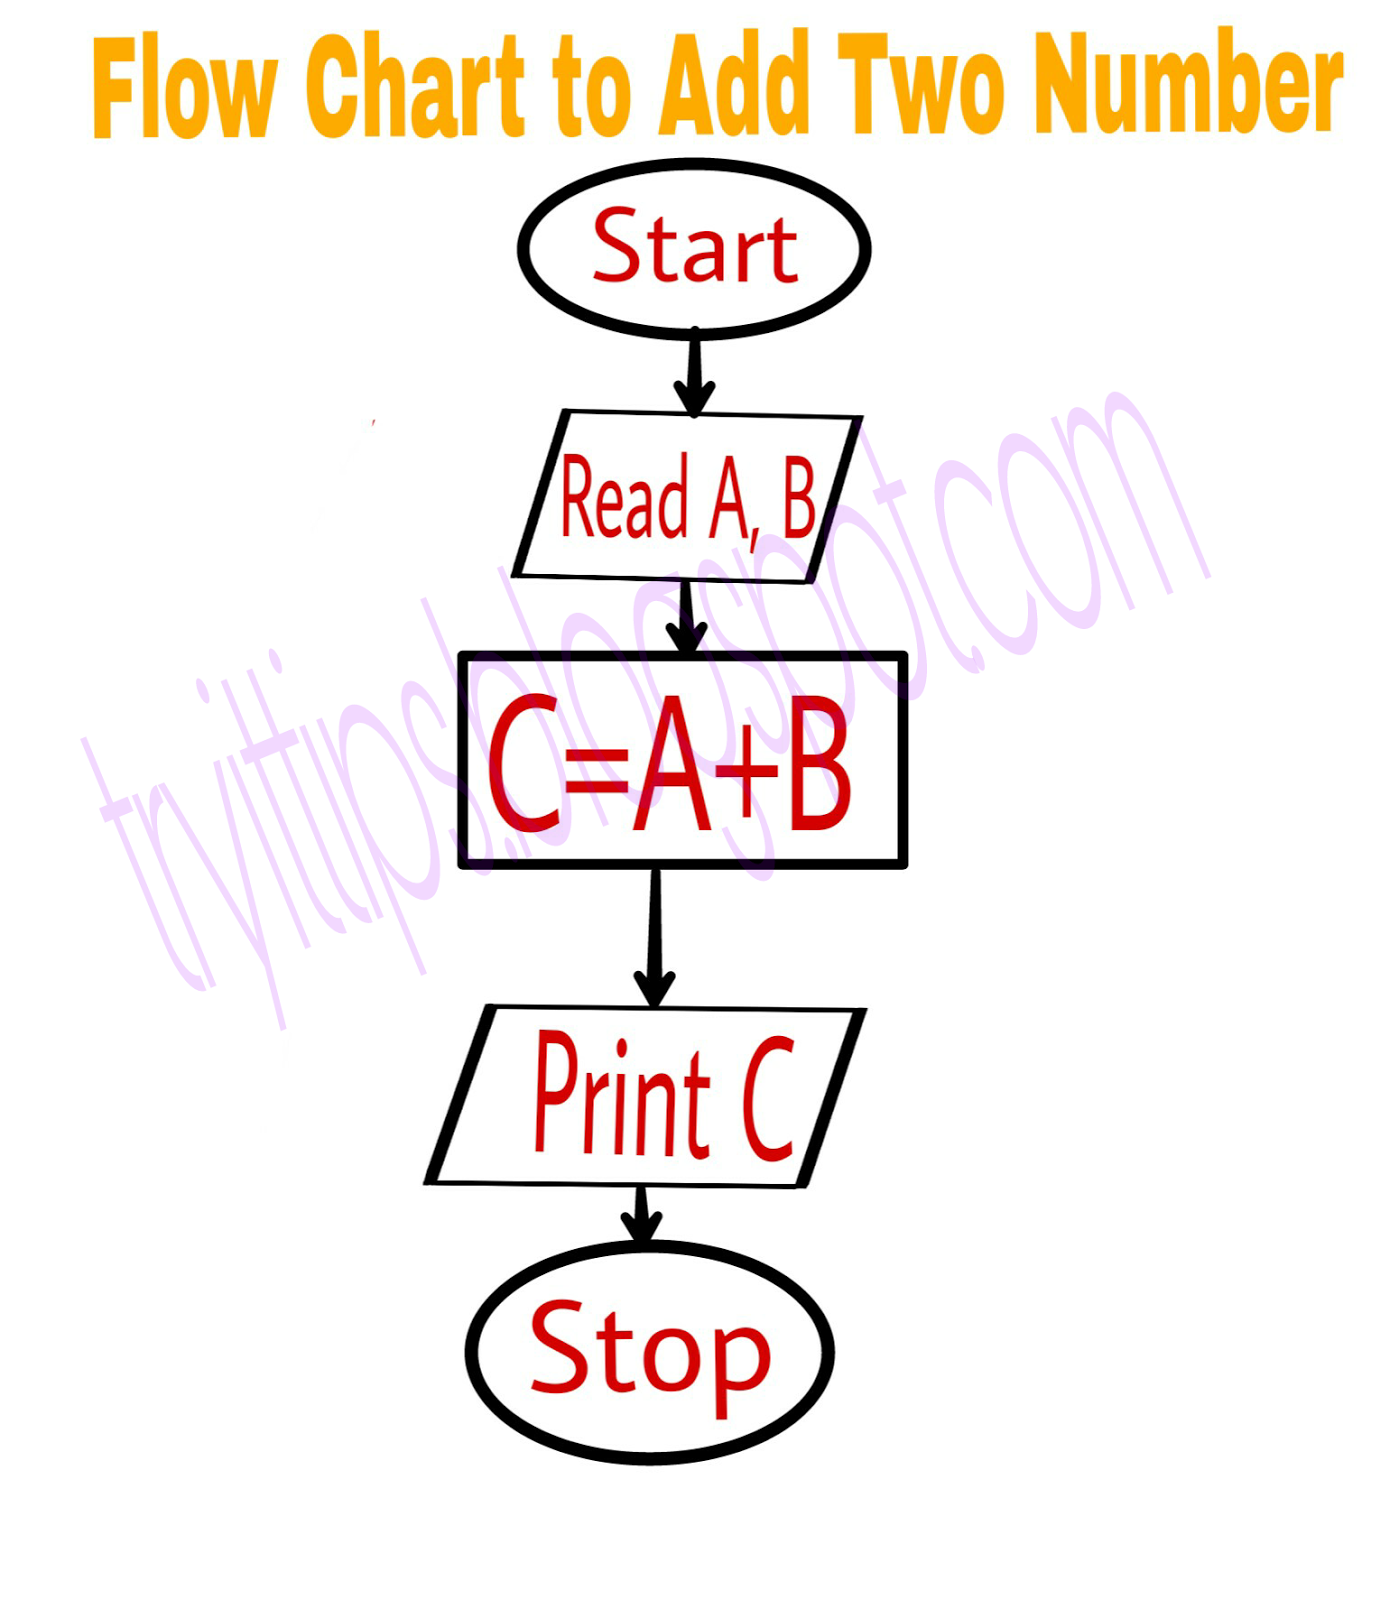 Flow chart and symbols using in programming languages in hindi example 1 draw a flow chart to add two numbers biocorpaavc